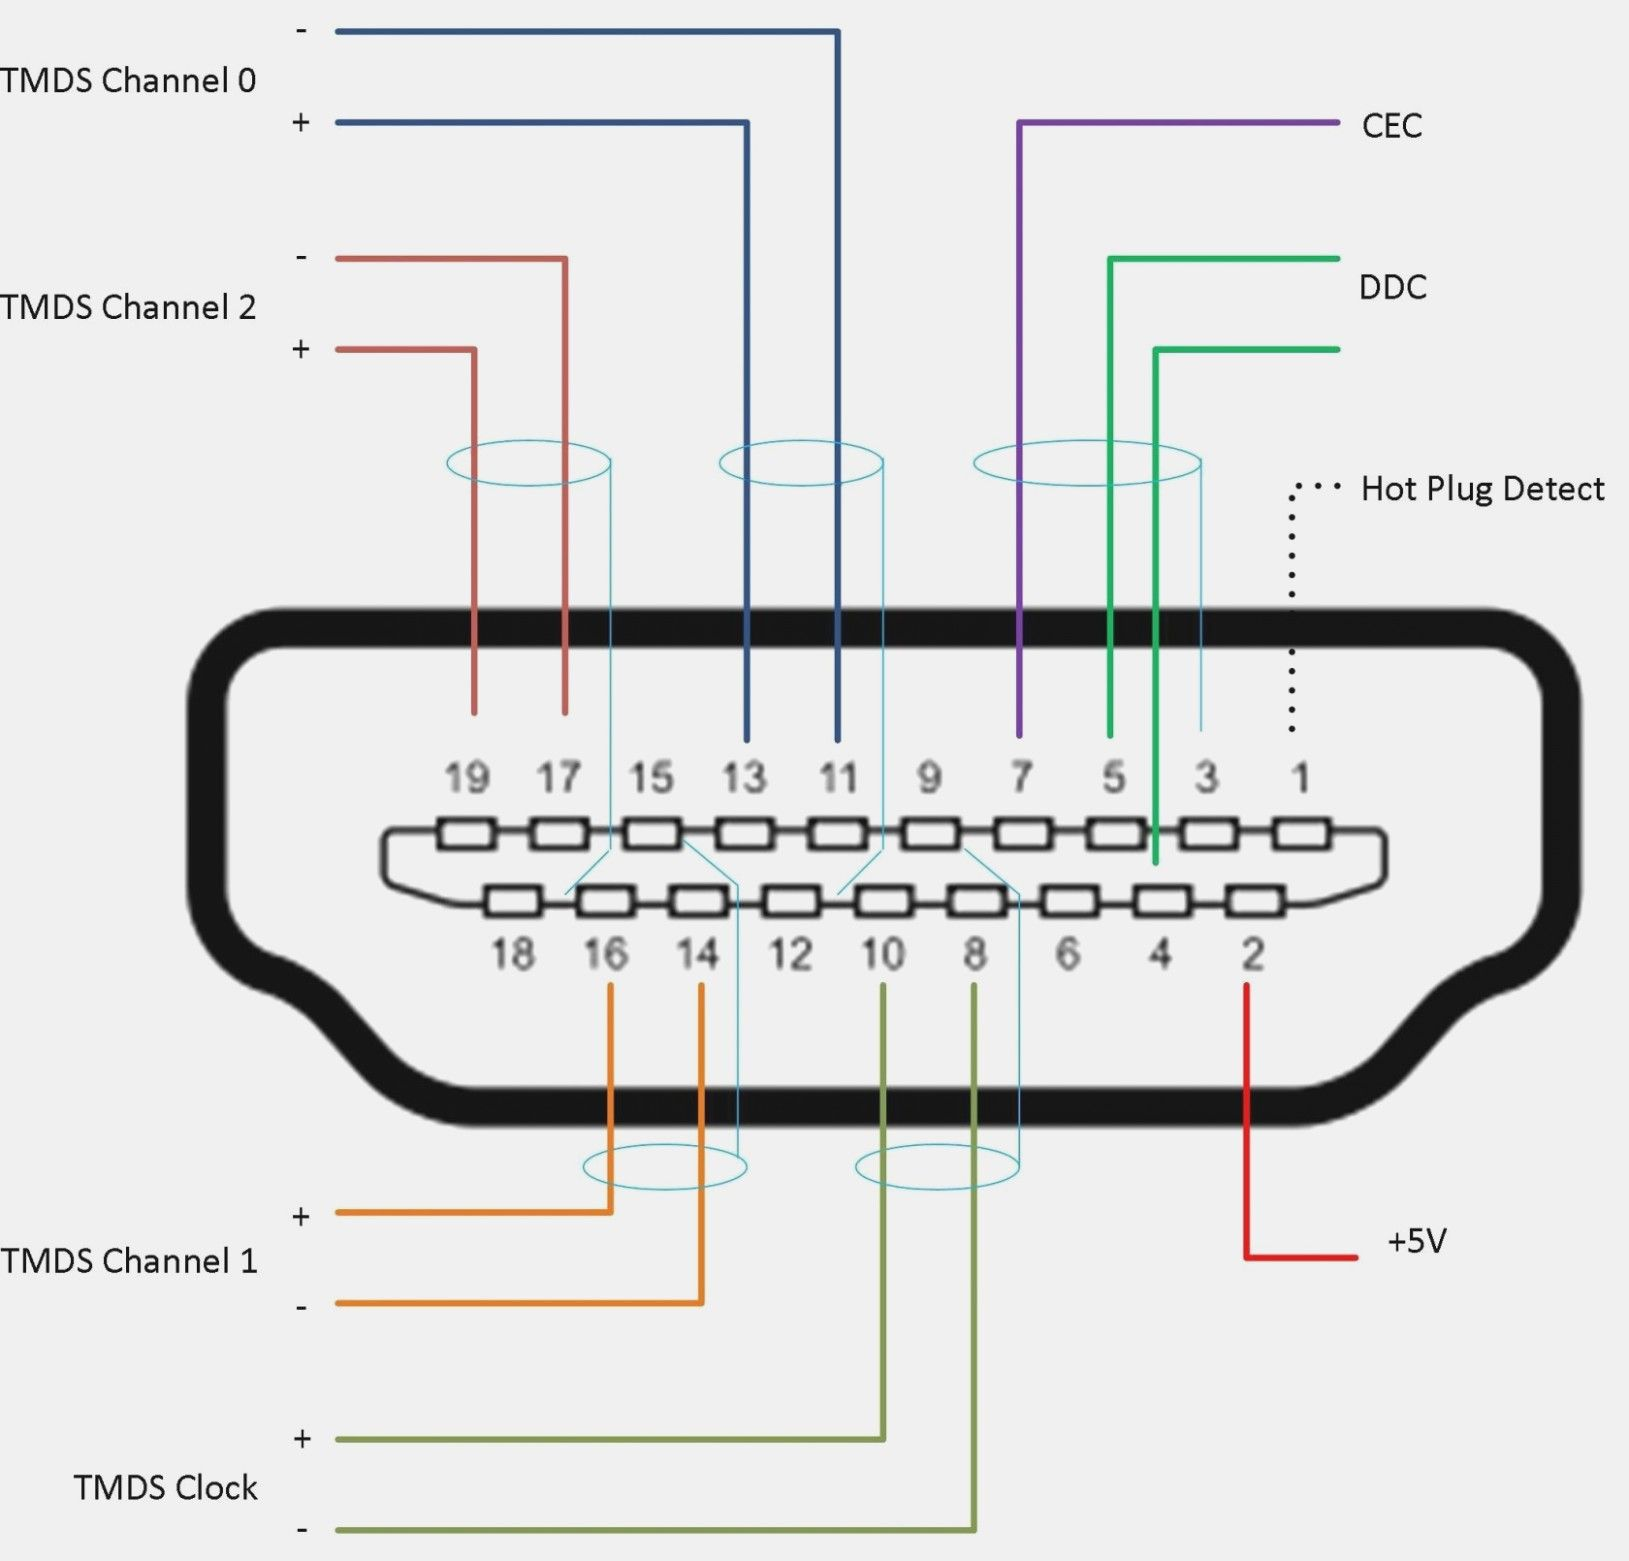 [SCHEMATICS_43NM]  New Hd Diagram #diagram #wiringdiagram #diagramming #Diagramm #visuals  #visualisation #graphical | Hdmi, Vga connector, Hdmi cables | Vga To Hdmi Cable Wiring Diagram |  | Pinterest